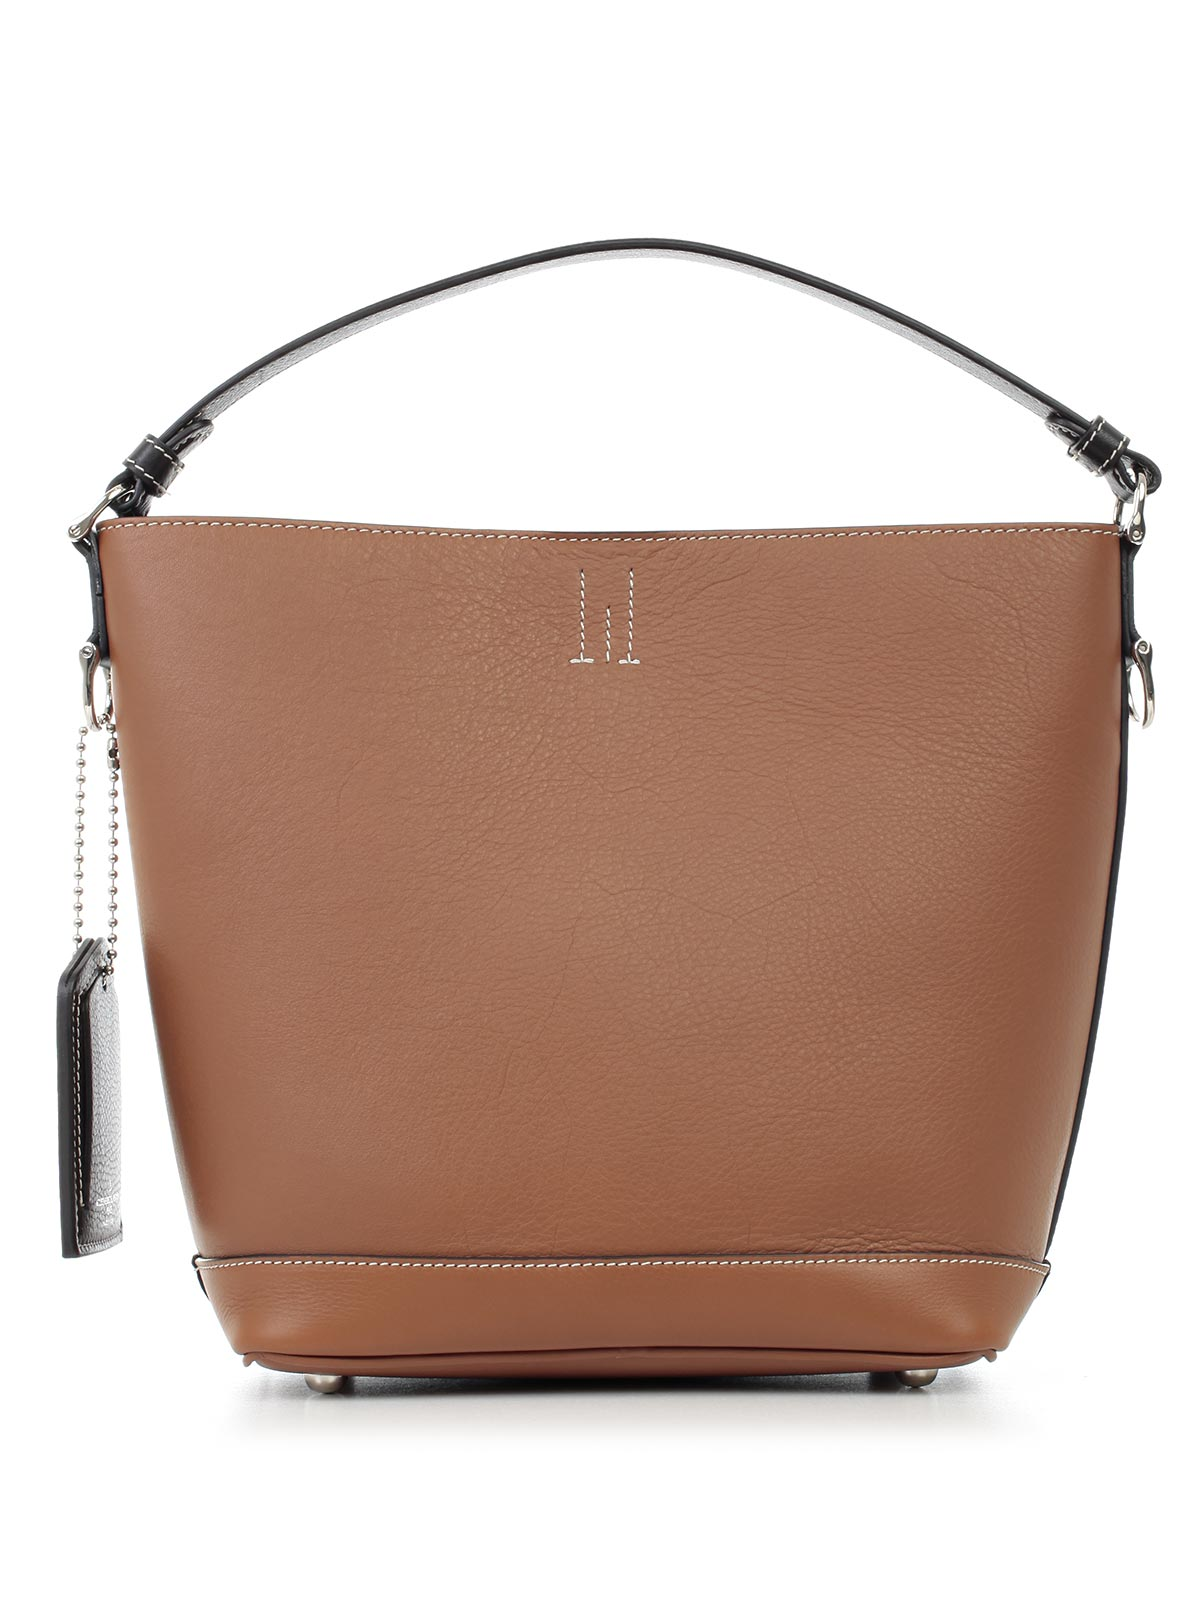 Picture of GOLDEN GOOSE DELUXE BRAND BAG